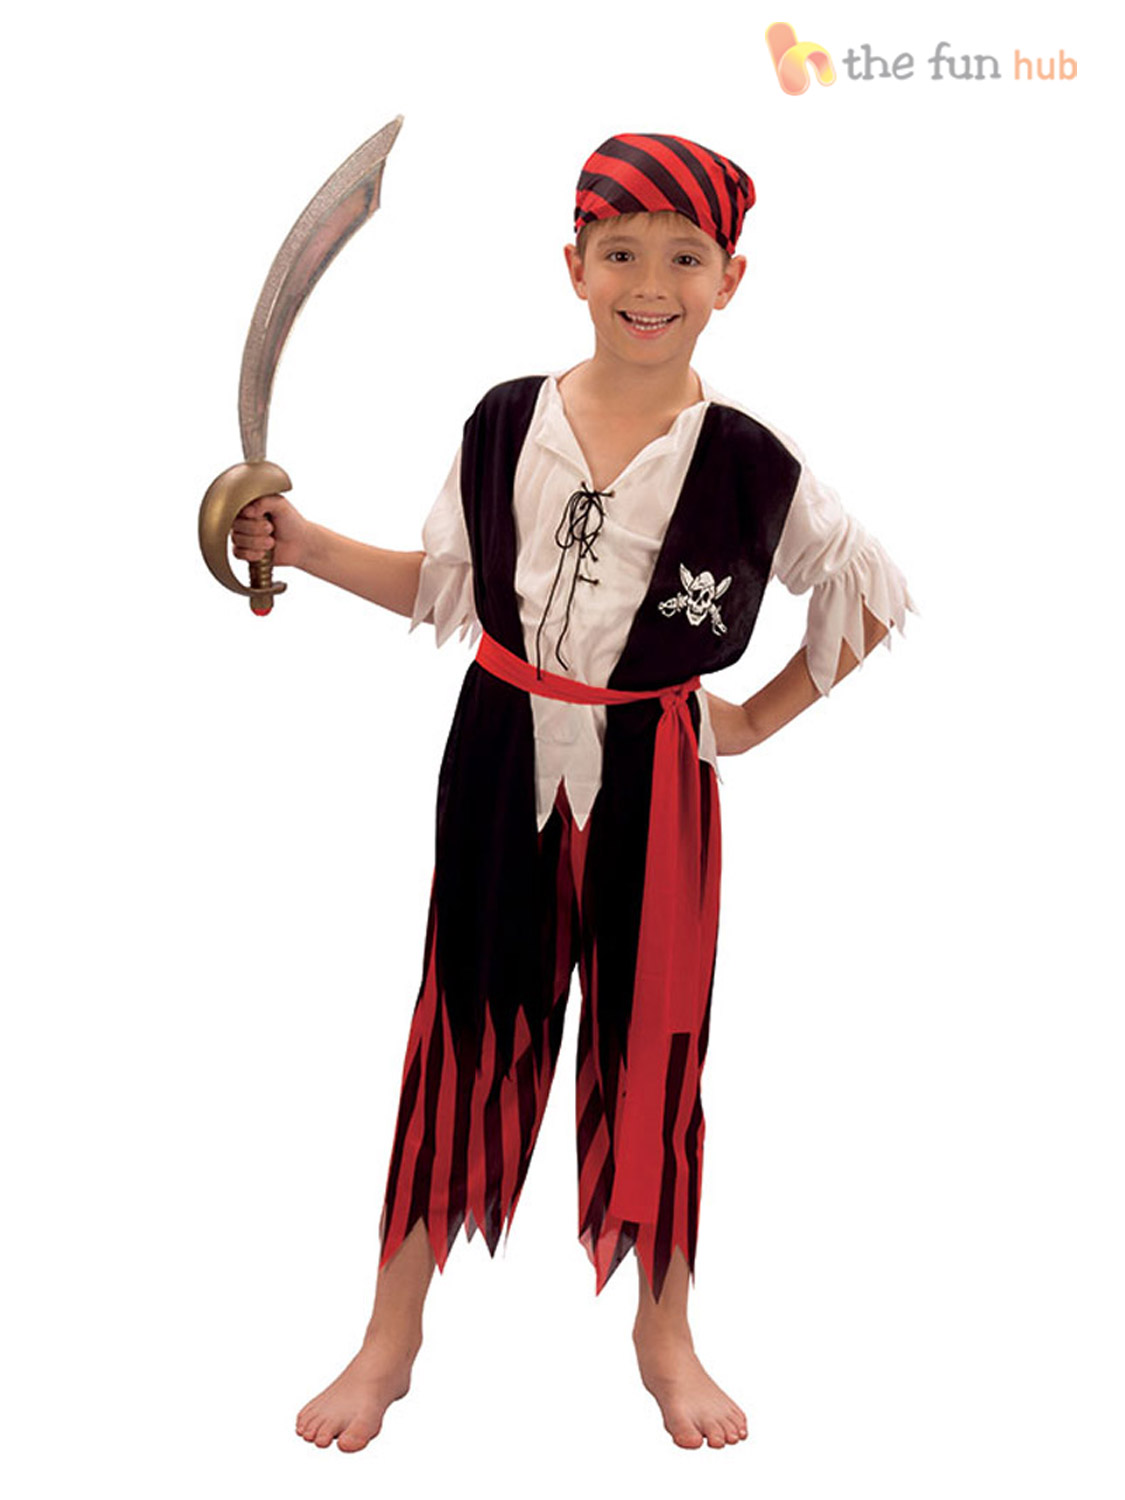 Boys pirate costume kids caribbean fancy dress outfit age 4 5 6 7 8 boys pirate costume kids caribbean fancy dress outfit solutioingenieria Choice Image